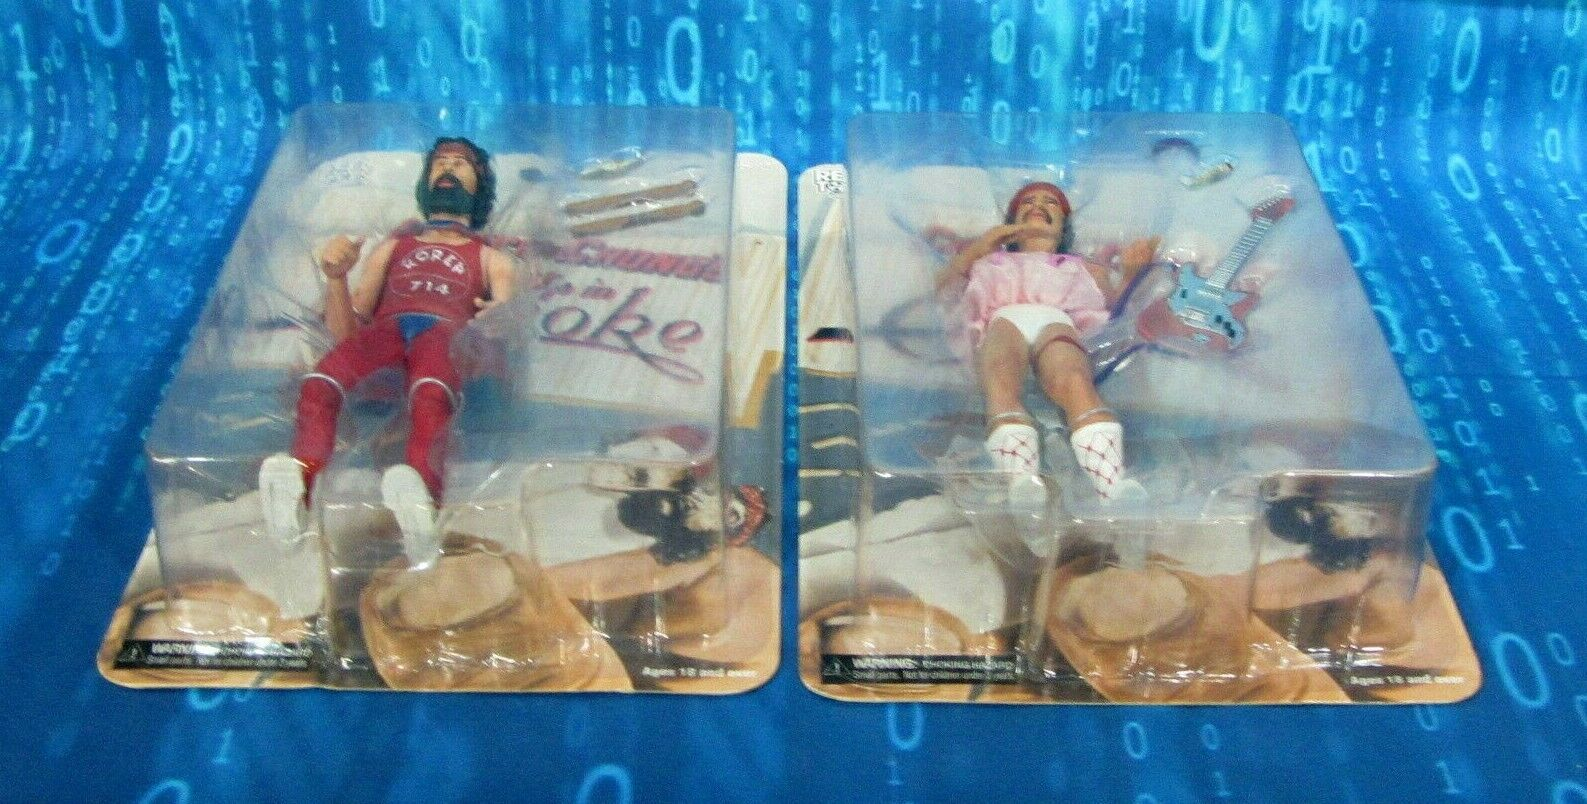 CHEECH AND CHONG FIGURE SET MINT IN FACTORY BUBBLES , , , VERY CLEAN BRIGHT COLORS c17517